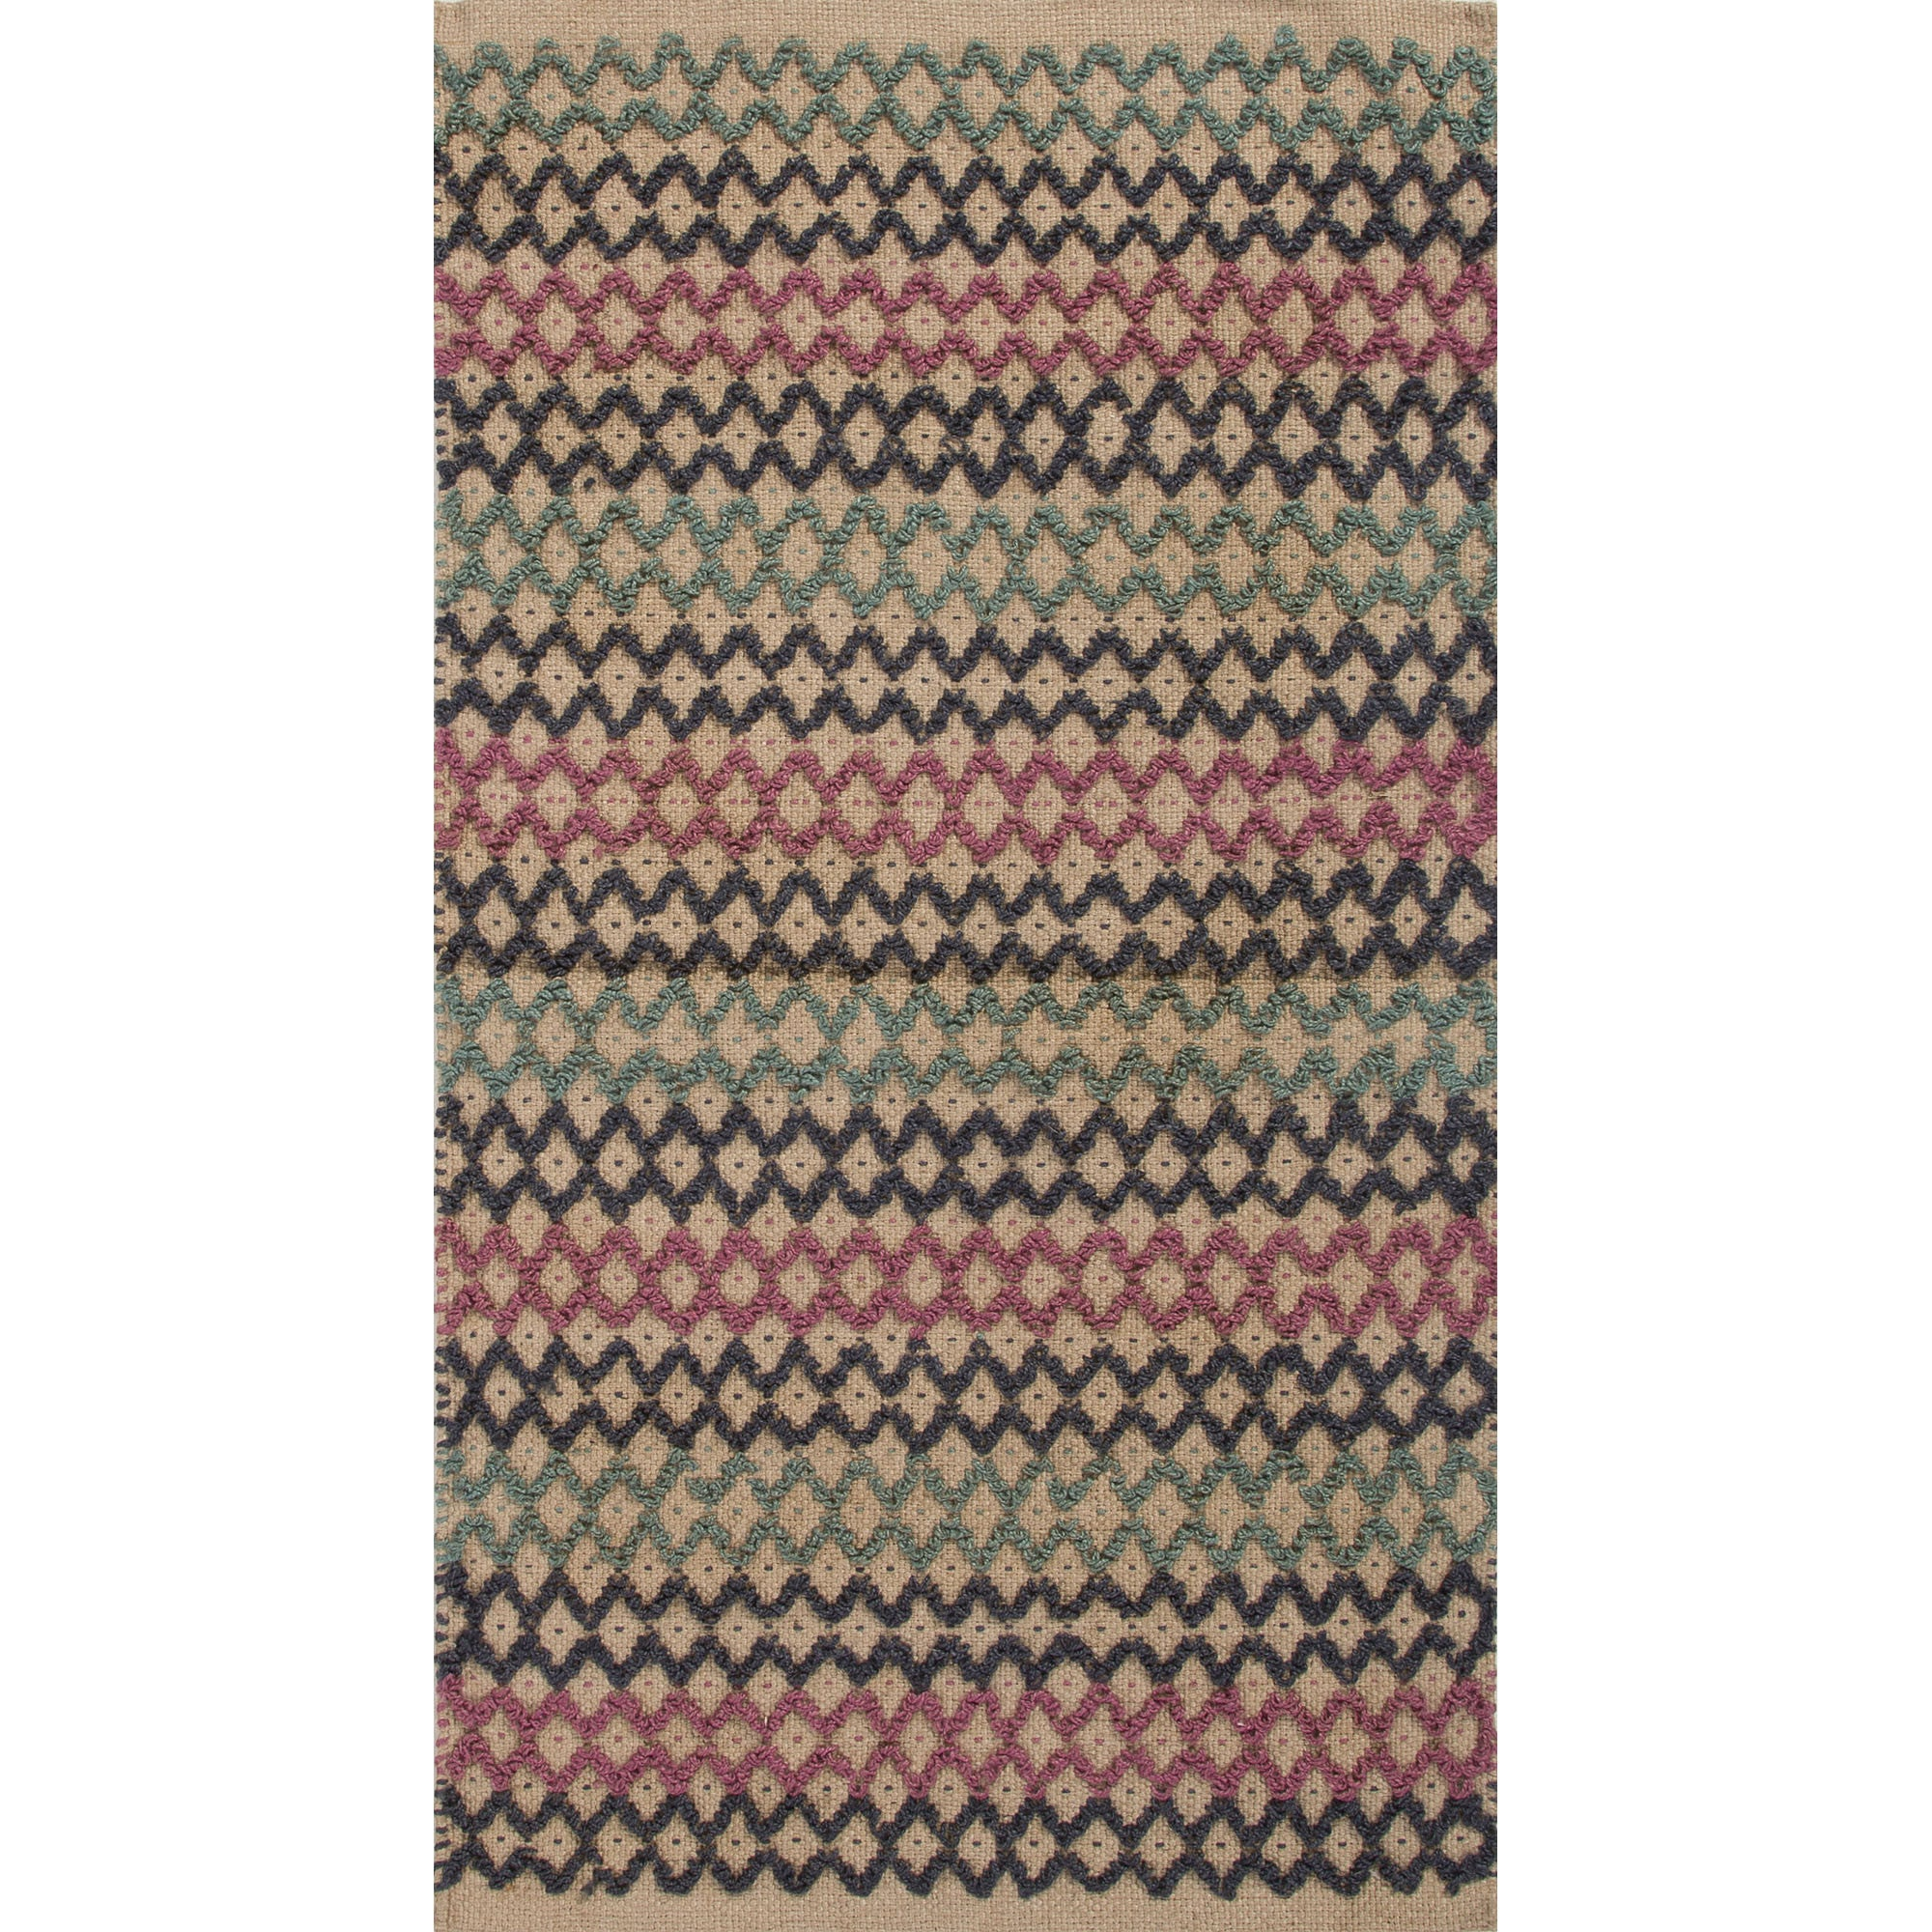 Jaipur Rugs Accent Solid Pattern Blue/Pink Jute Area Rug